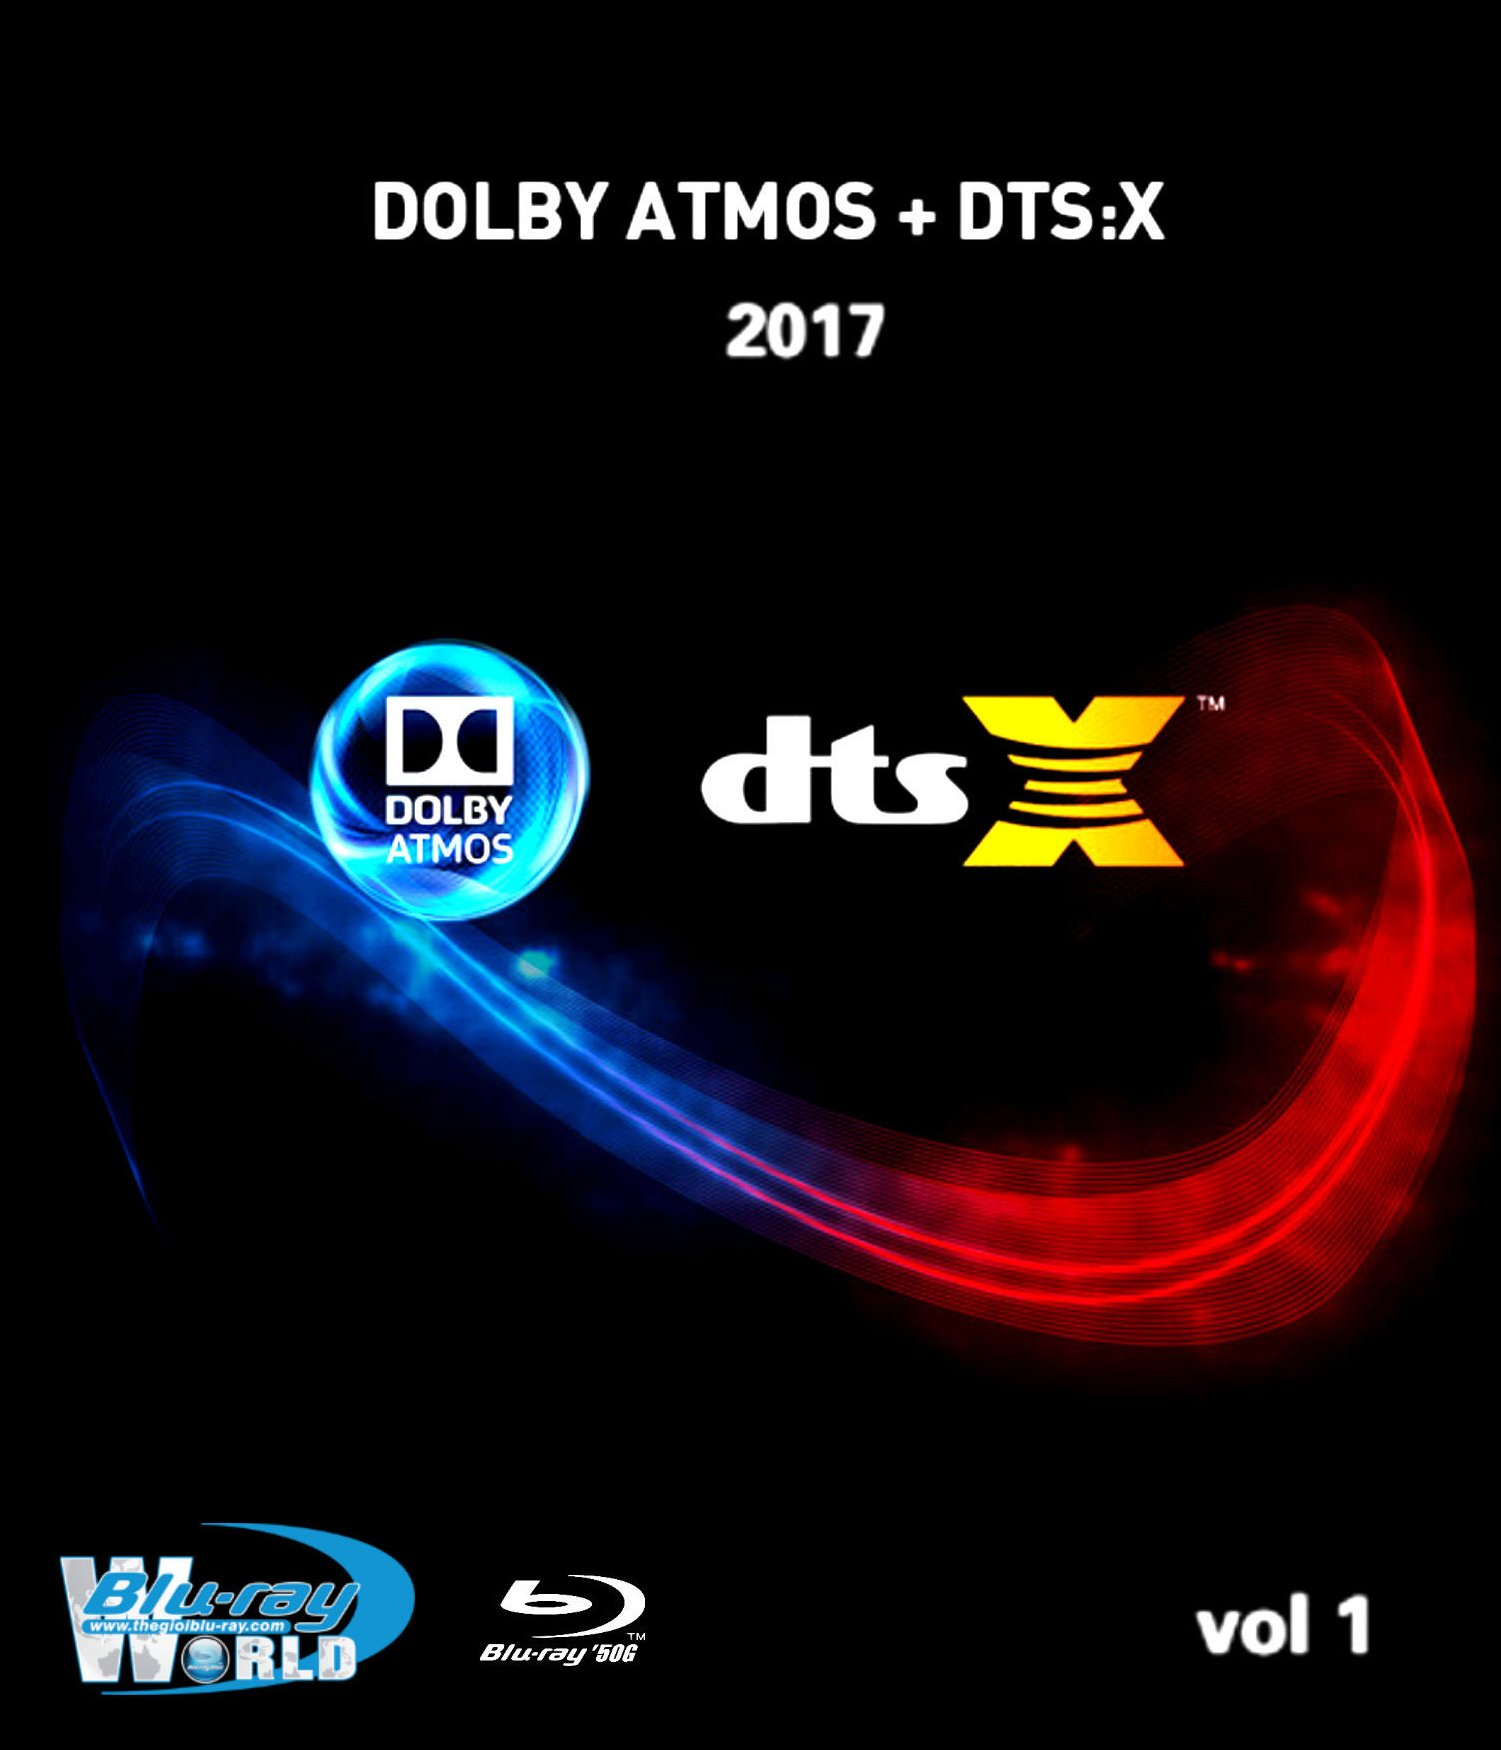 F1177.Bluray Test Collection Demo Disc Vol.1 2017 (50G)